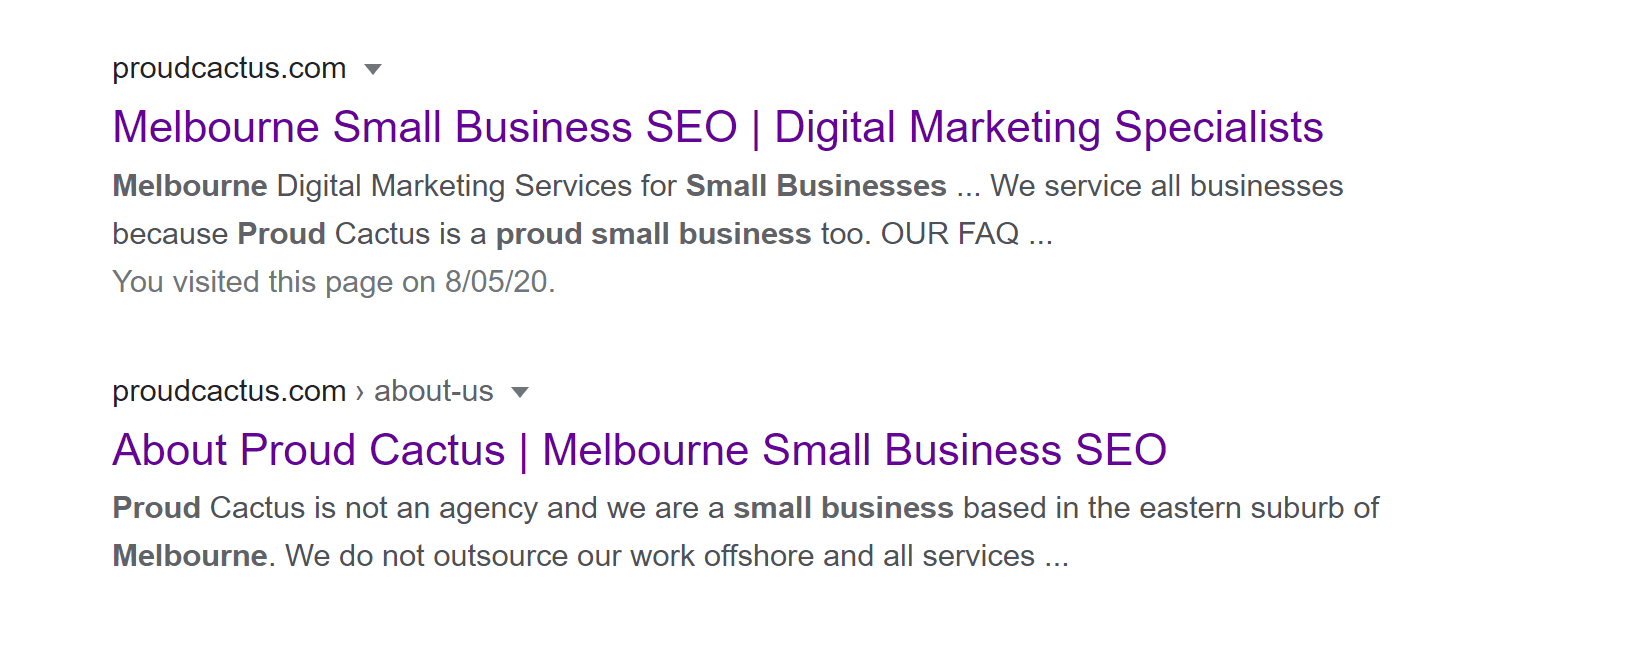 Search term 'Melbourne Small Business SEO' on Google